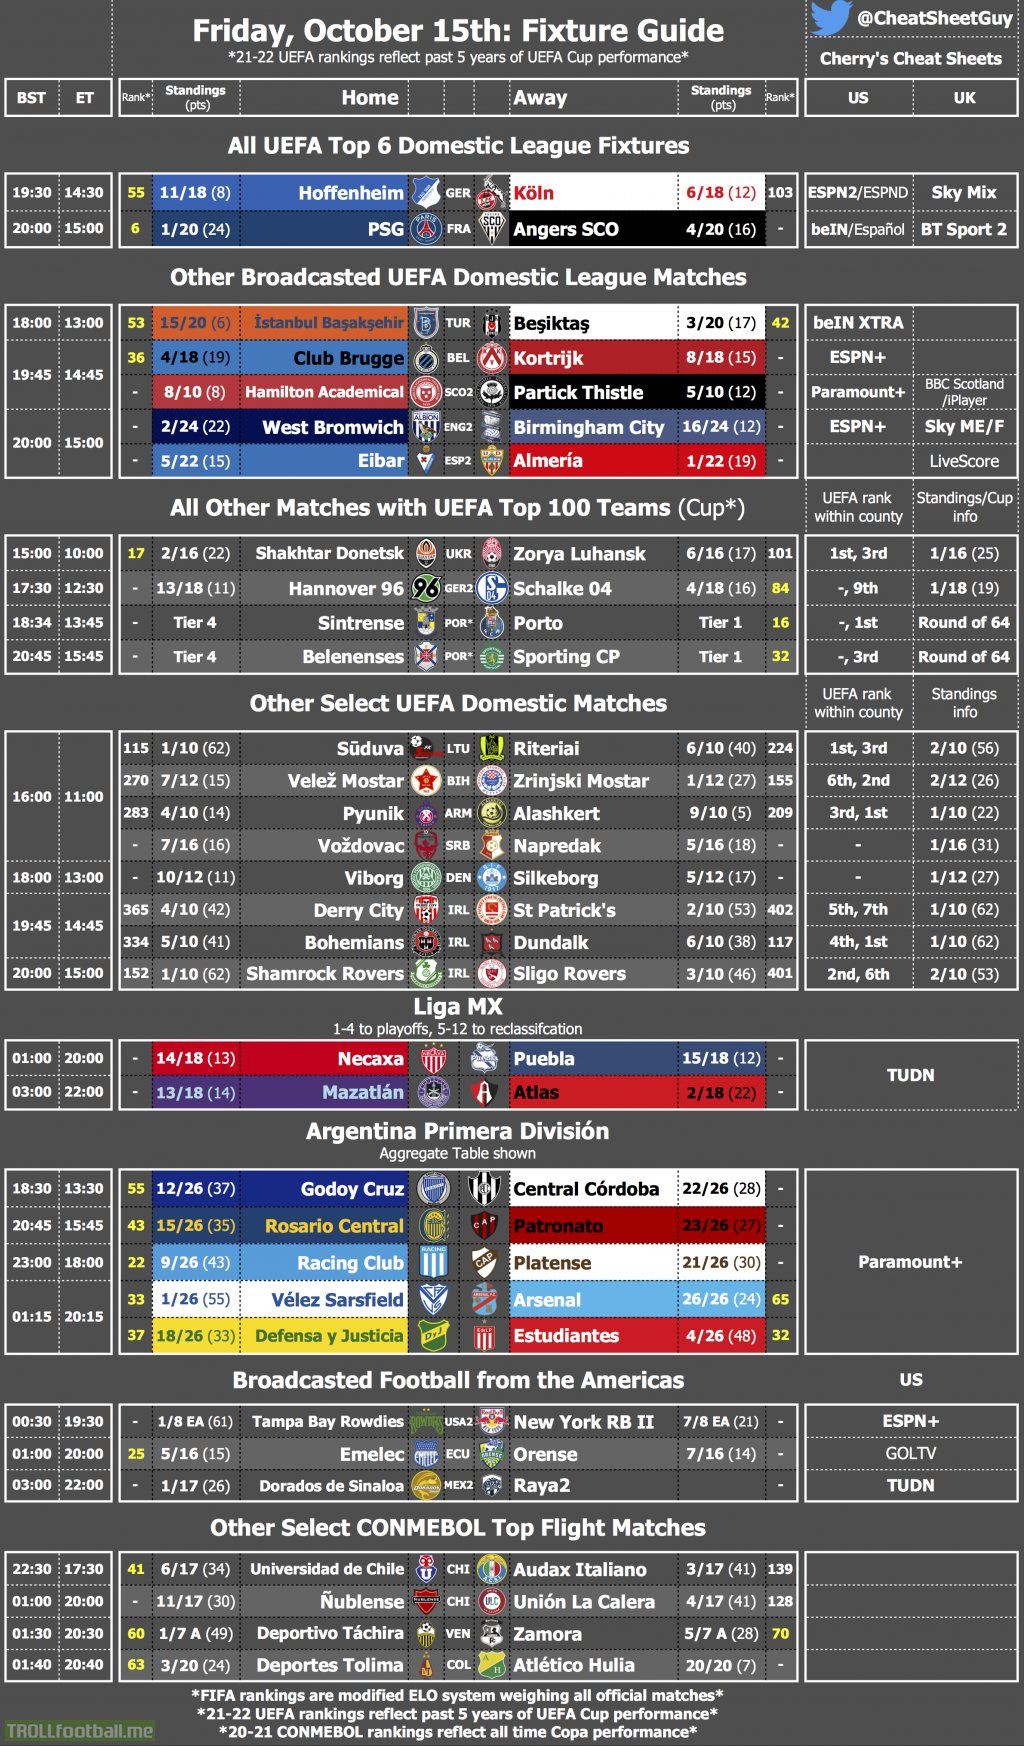 A Fixture Cheat Sheet & Broadcast Guide for Friday